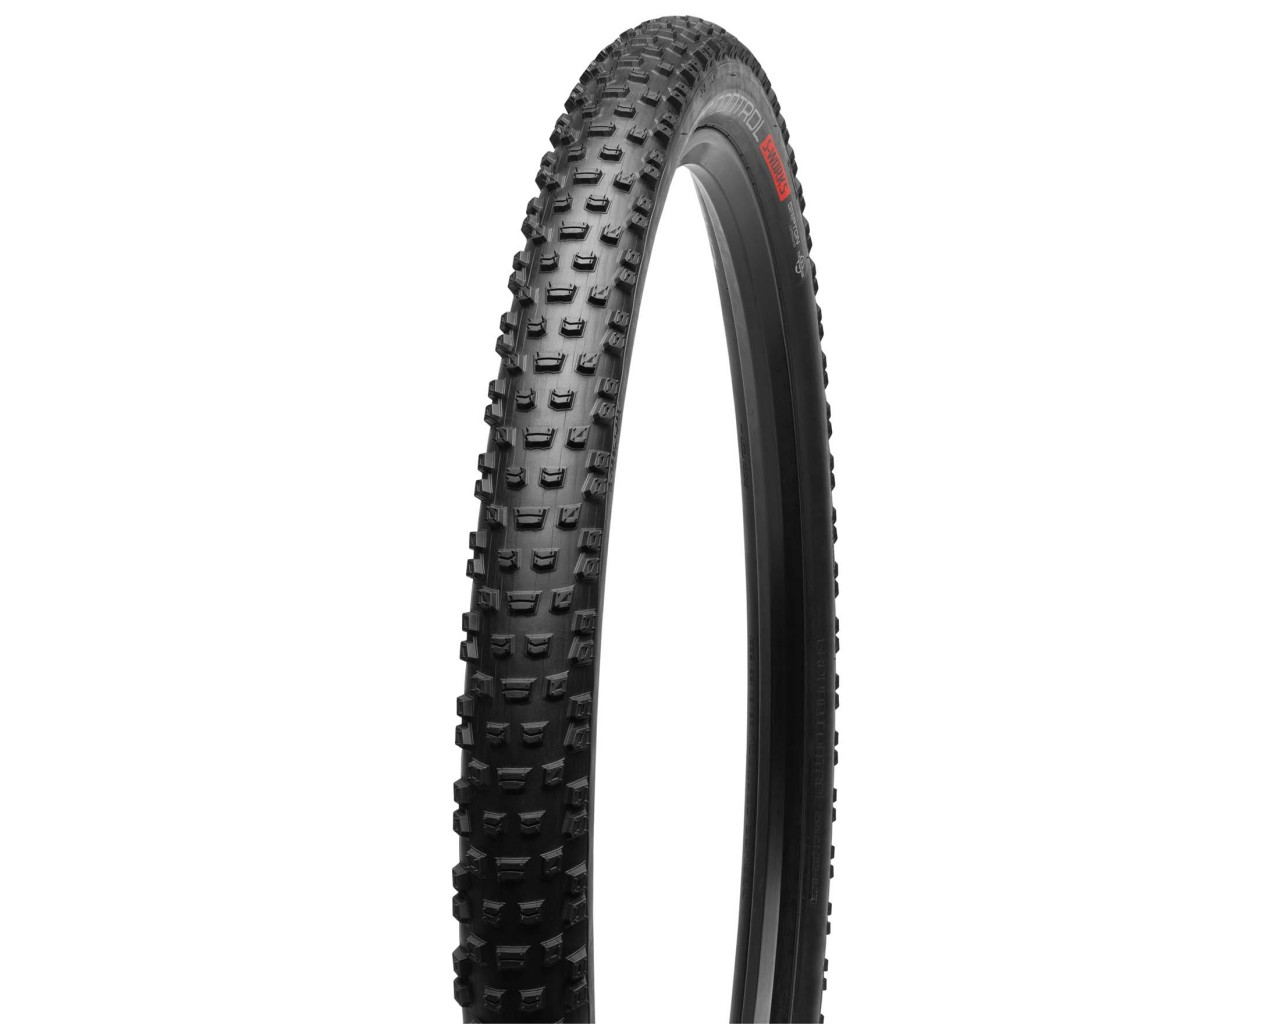 Specialized S-Works Ground Control 2 Bliss MTB-Tire 29 x 2.1 | black